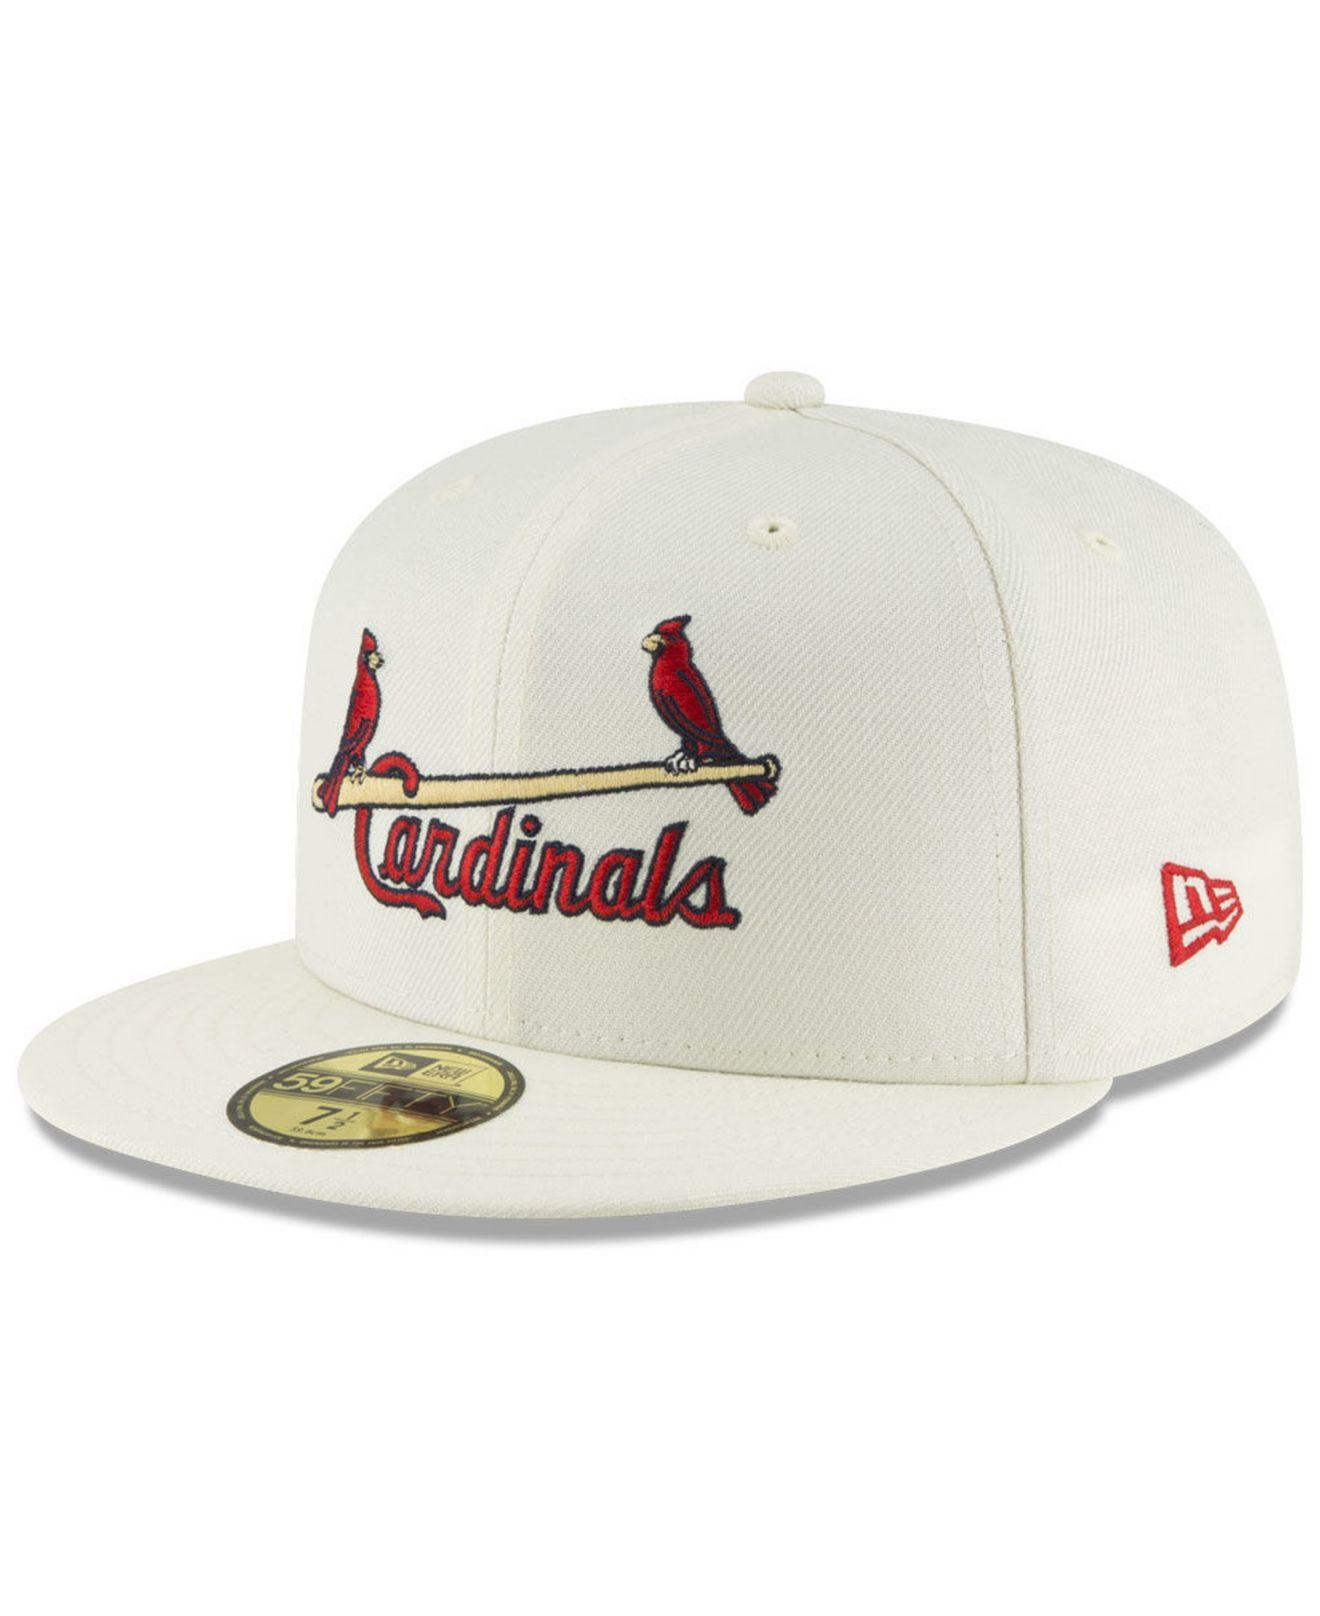 promo code 3dc15 5d742 KTZ - Multicolor St. Louis Cardinals Vintage World Series Patch 59fifty Cap  for Men -. View fullscreen